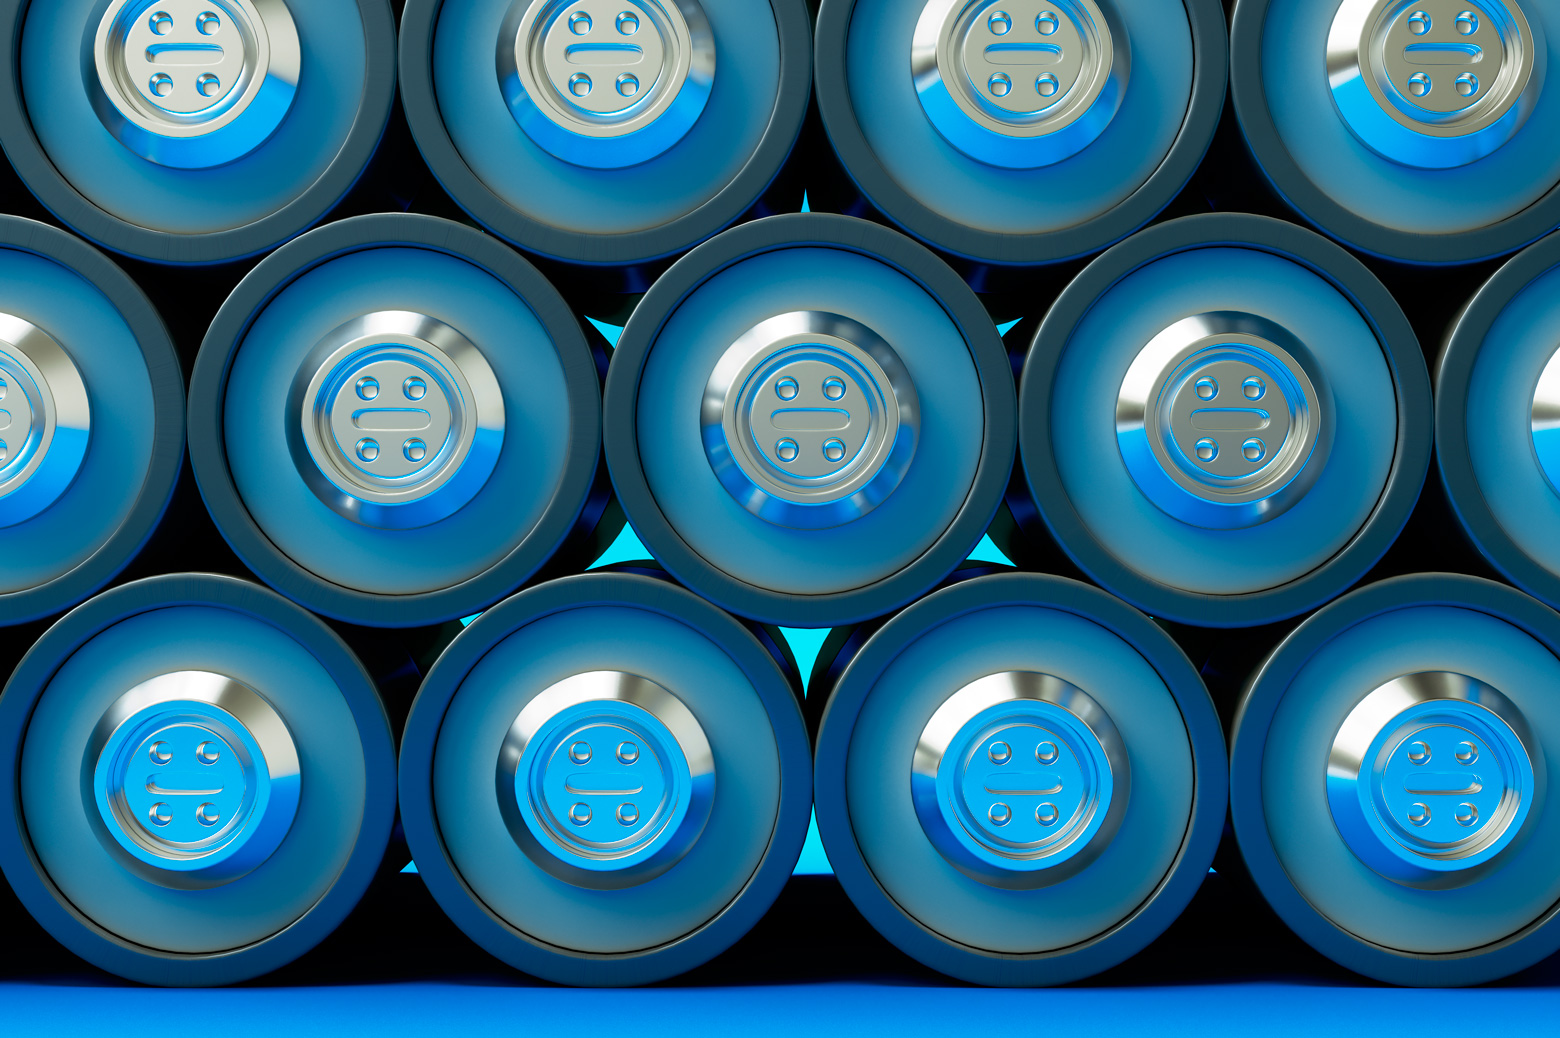 Blue batteries stacked on top of each other for storage